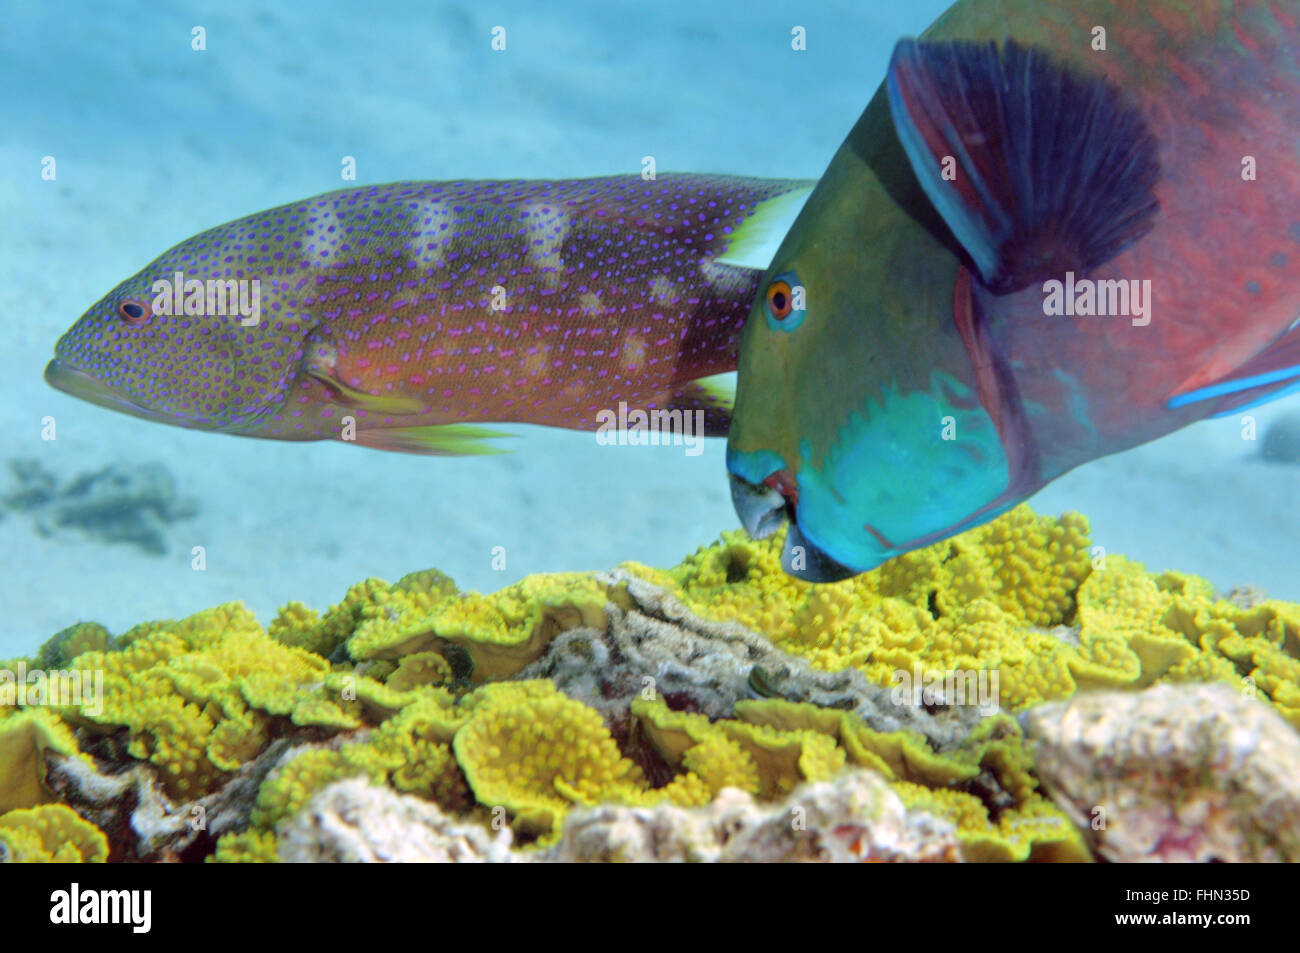 Red Sea steephead parrotfish, Chlorurus gibbus,  and Yellow-edged lyretail grouper, Variola louti swimming in background, - Stock Image